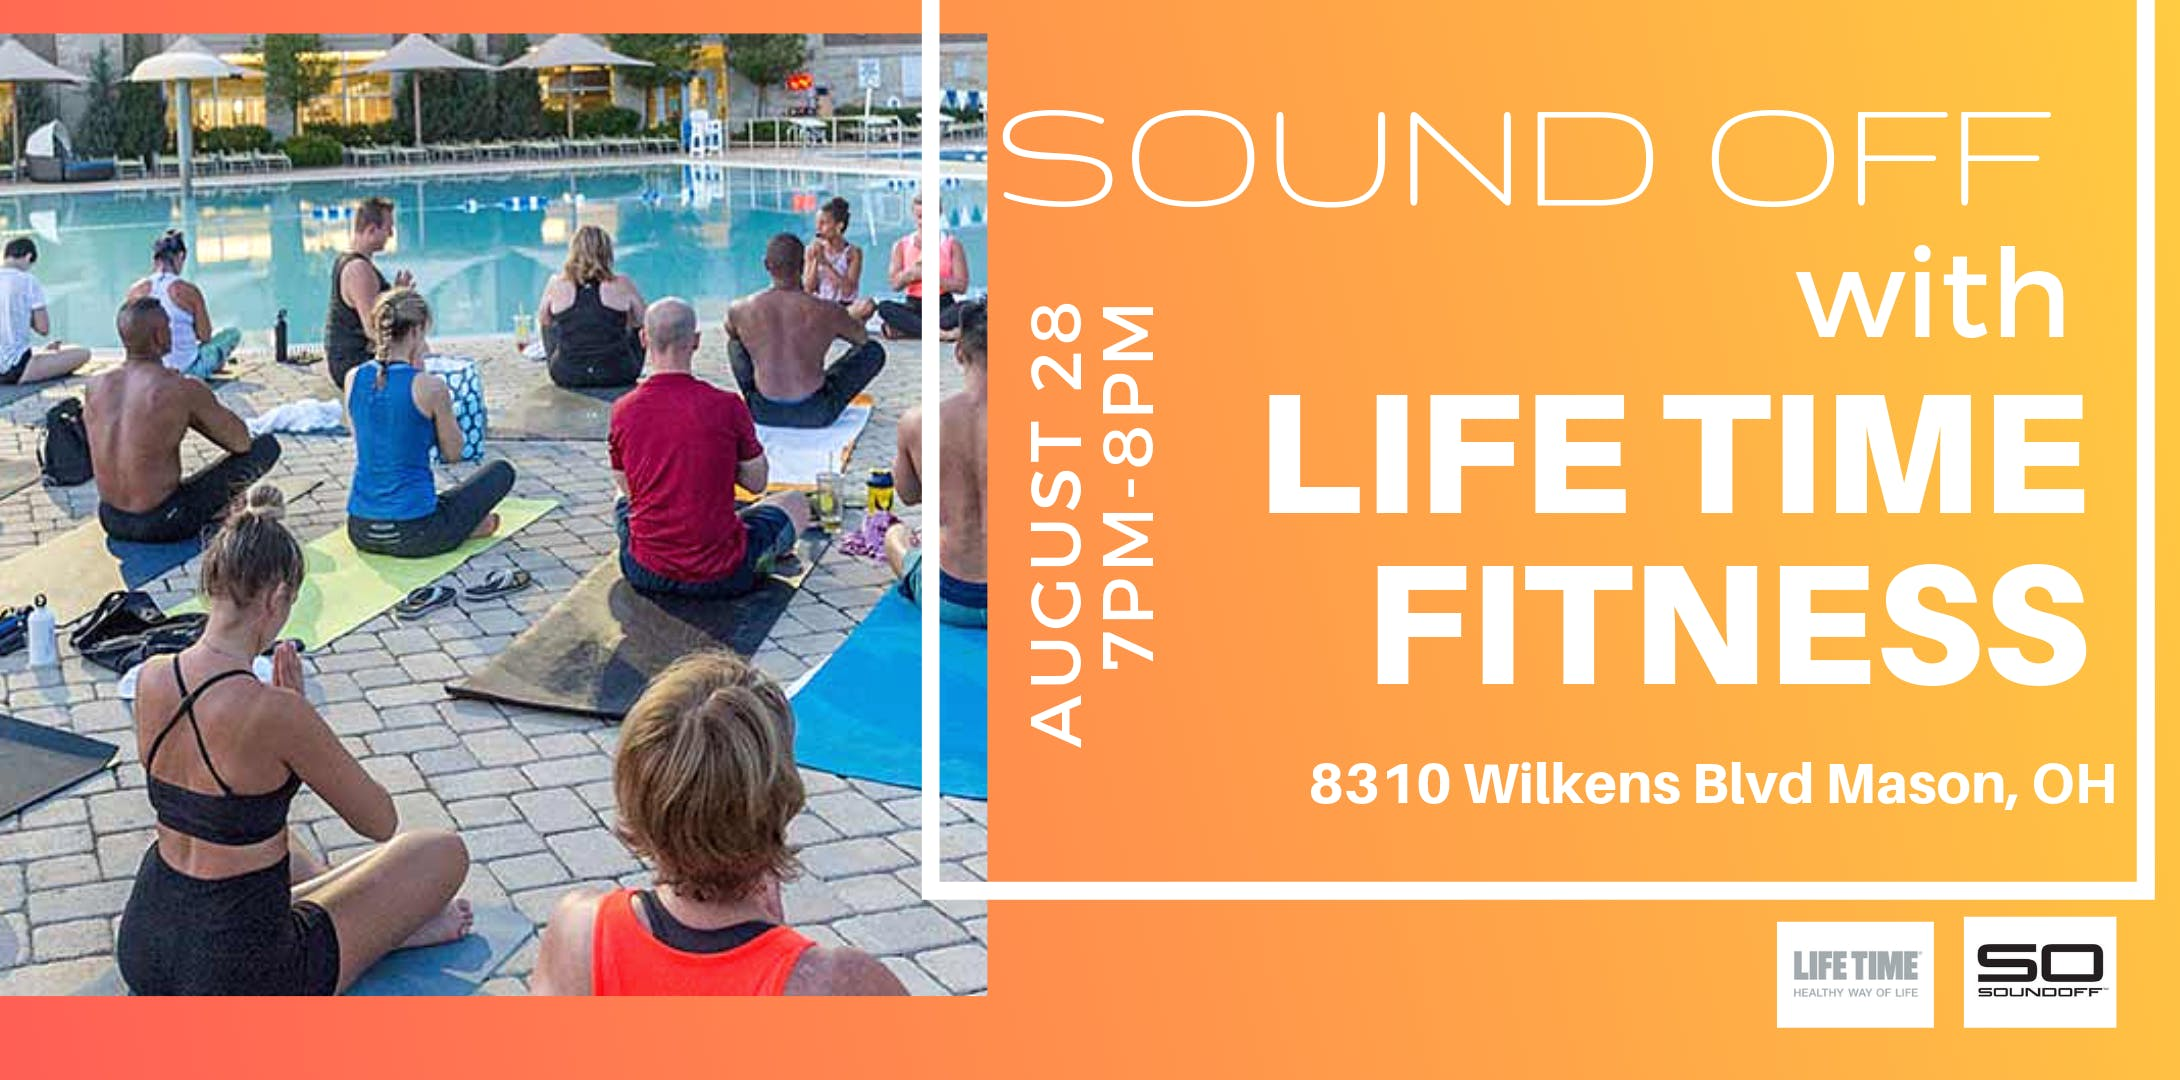 Sound Off with Life Time Fitness